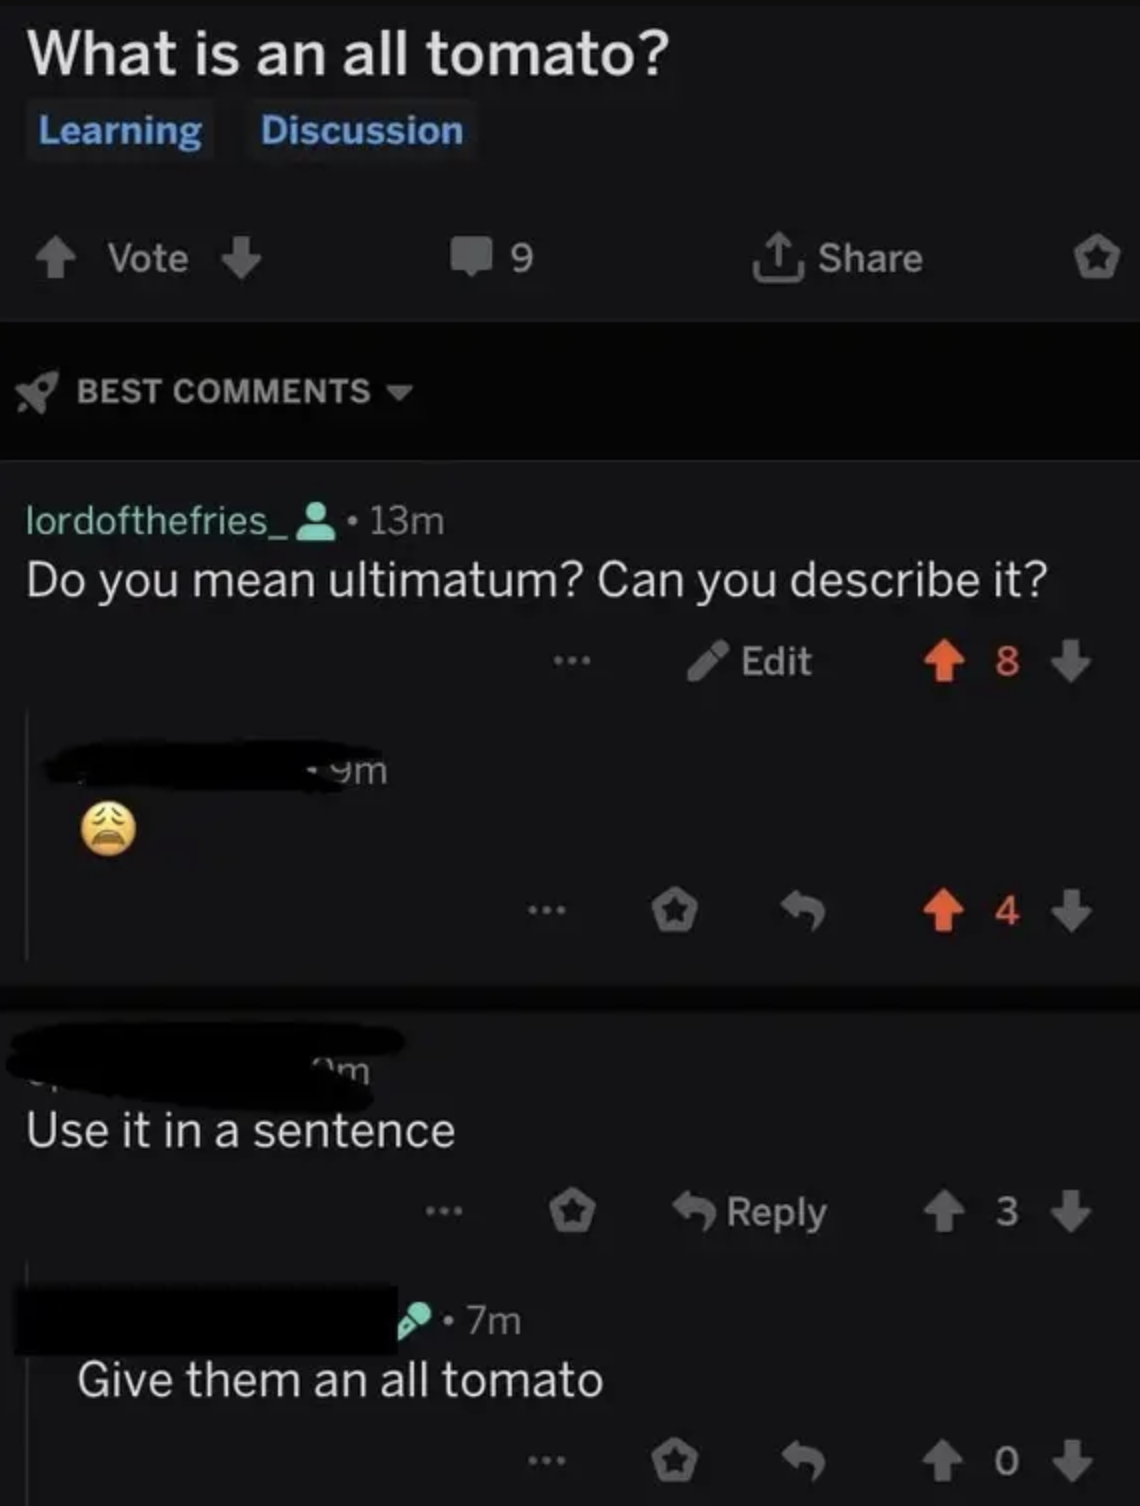 Person misspelling ultimatum as all tomato